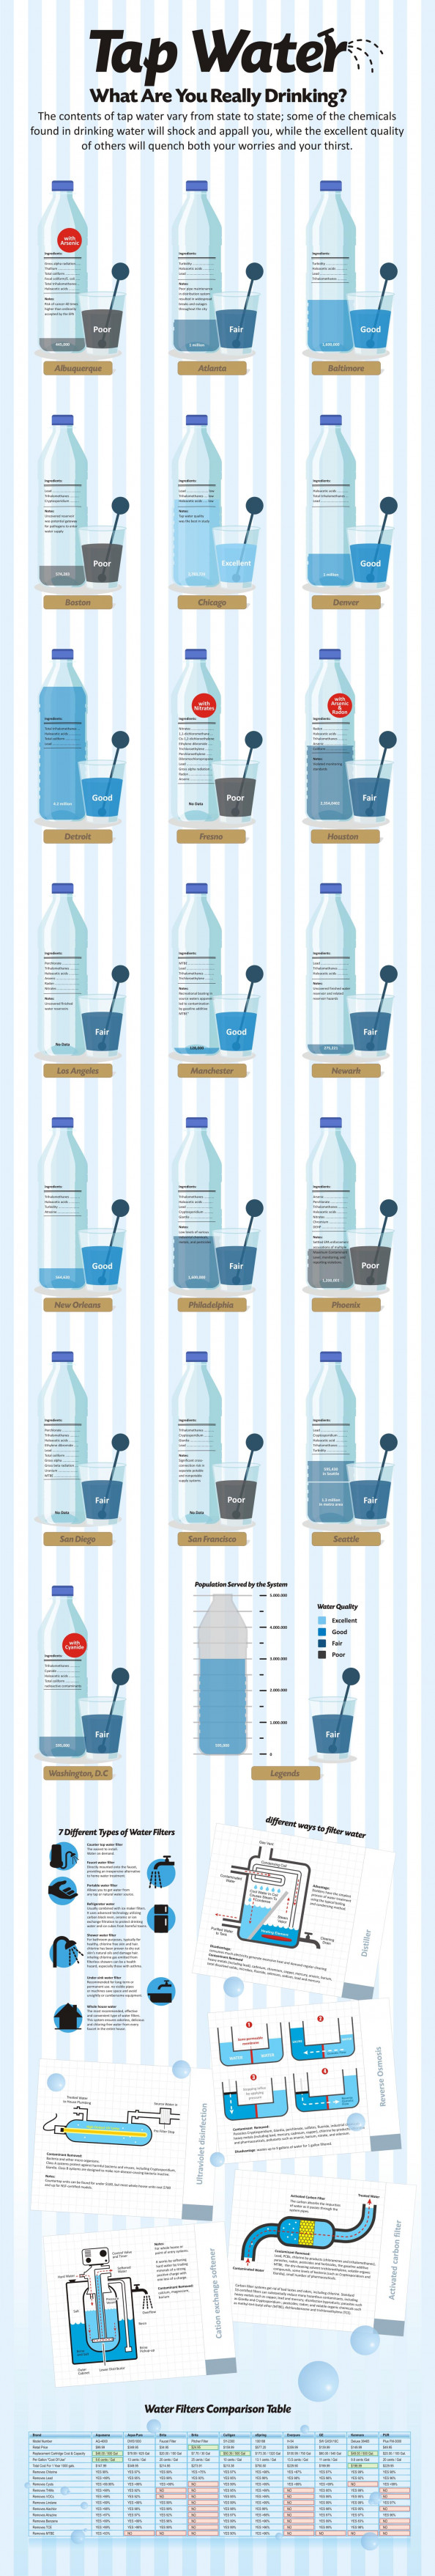 Tap Water: What are you really drinking? Infographic